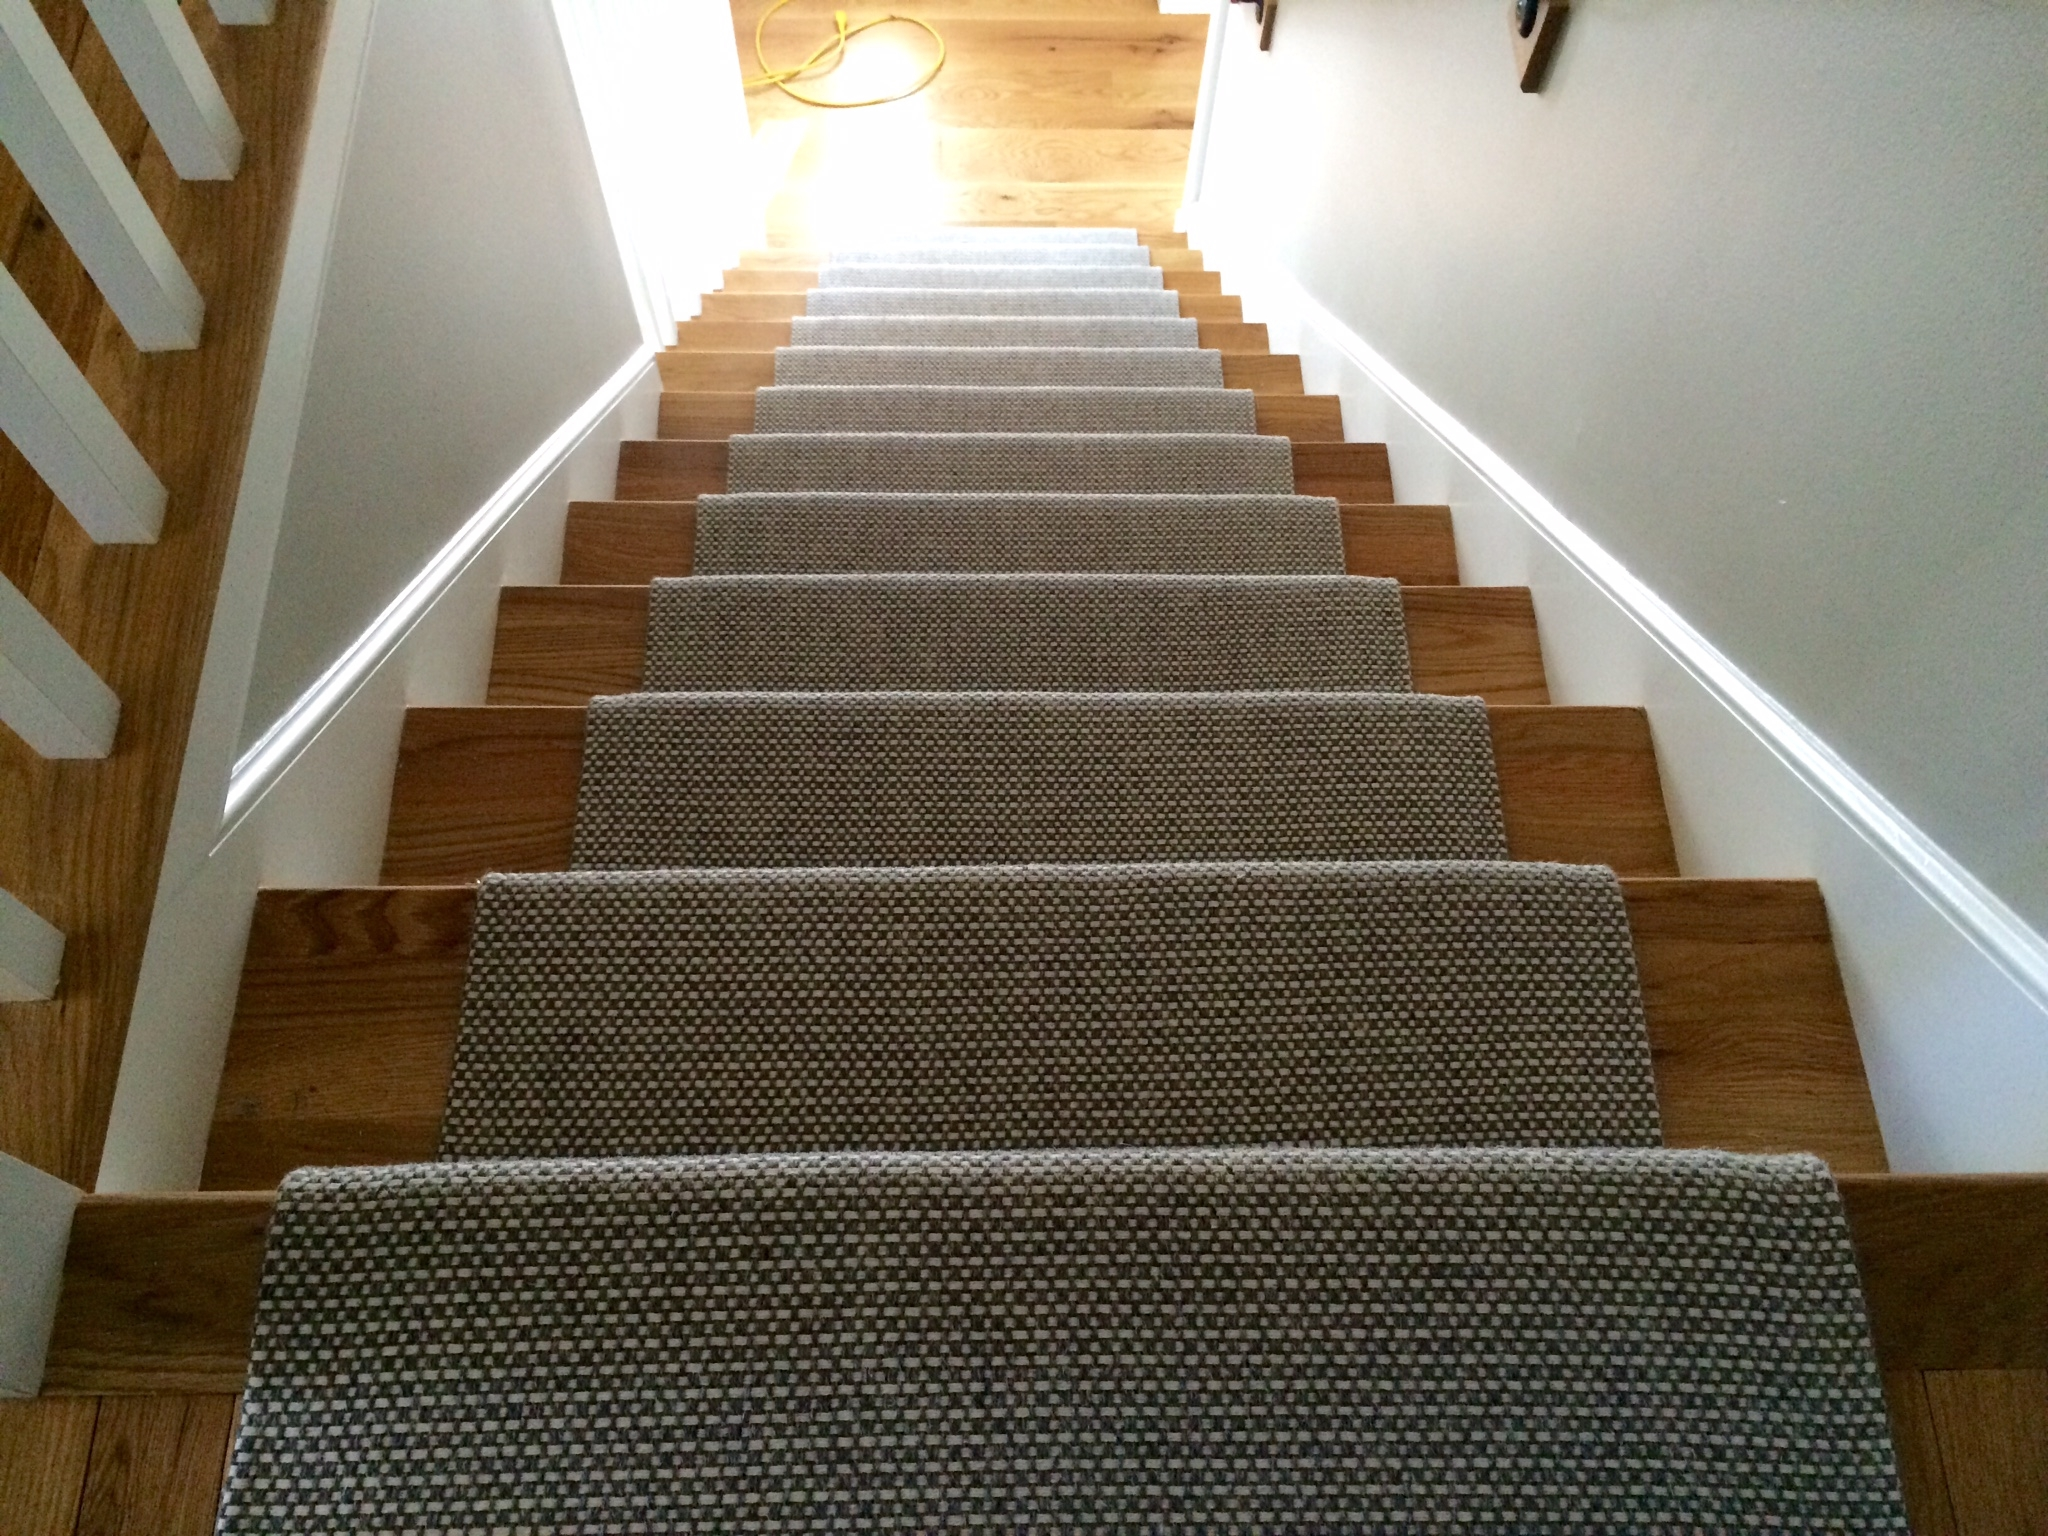 Merida Flat Woven Wool Stair Runner By The Carpet Workroom   Wool Carpet Runners For Stairs   Flooring   Woven   Rectangular Cord Treads   Stair Country Style   Modern